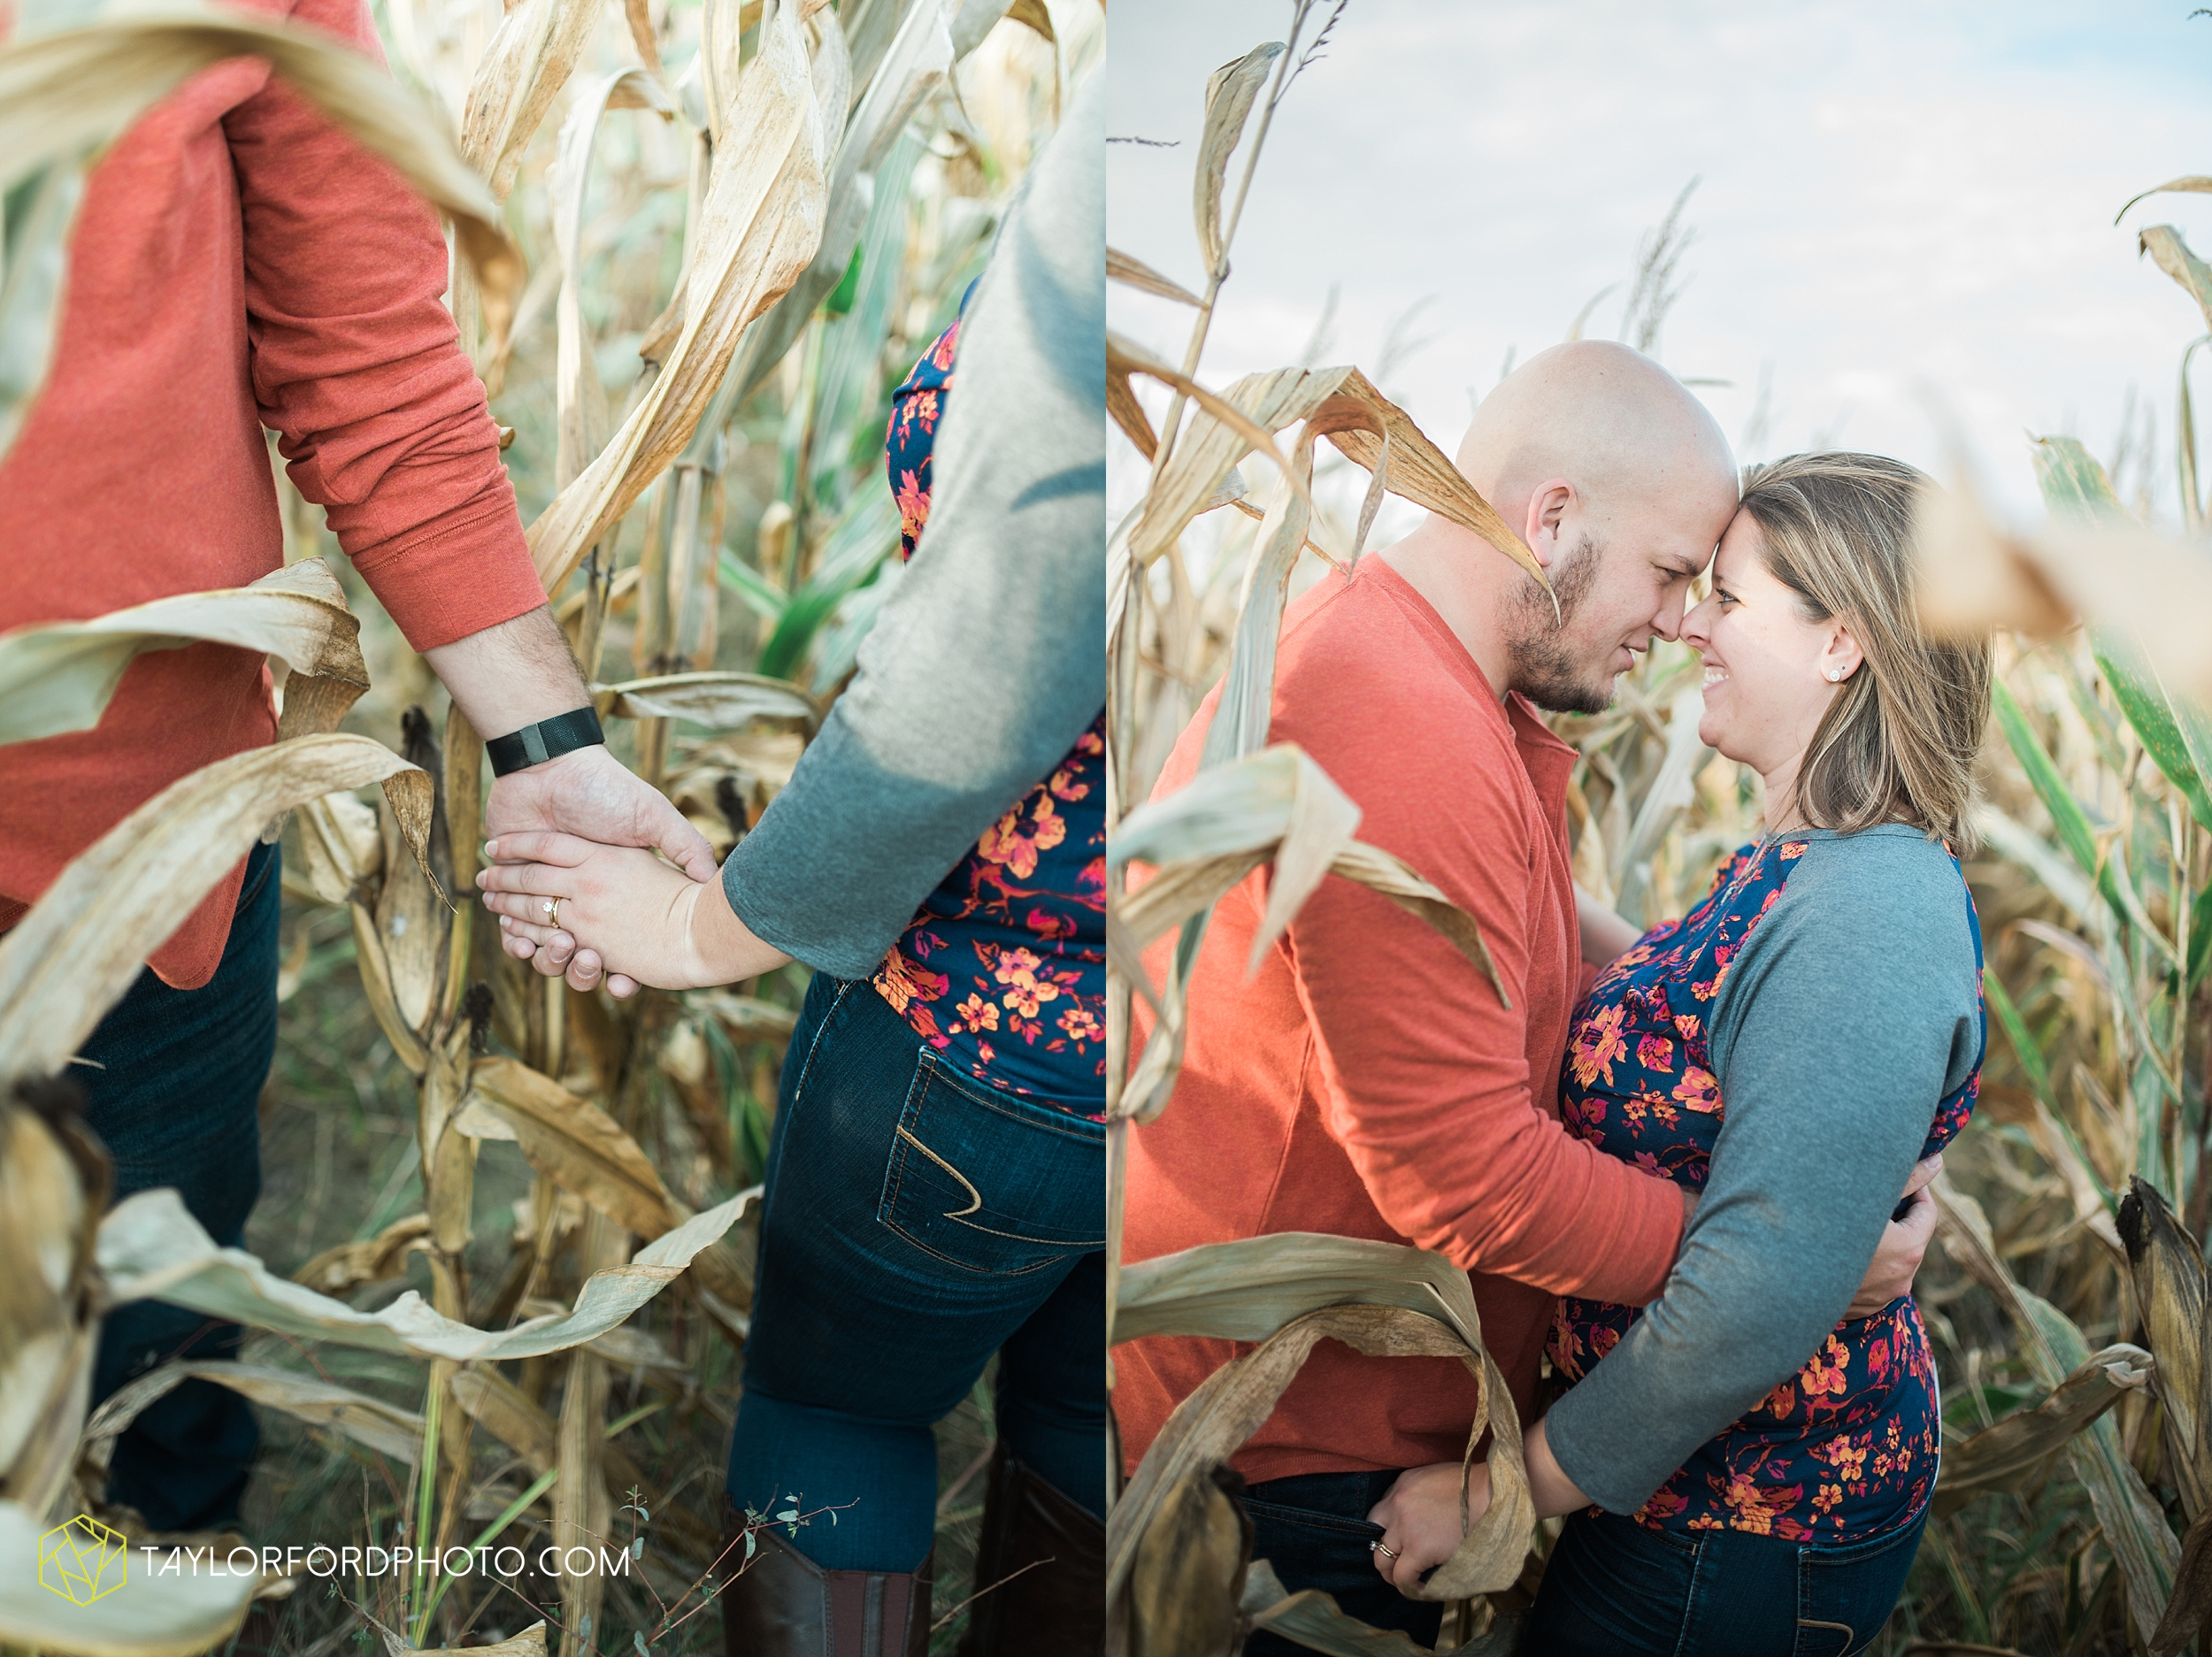 van-wert-ohio-engagement-wedding-photographer-Taylor-Ford-Photography-fall-farm-nature_4153.jpg